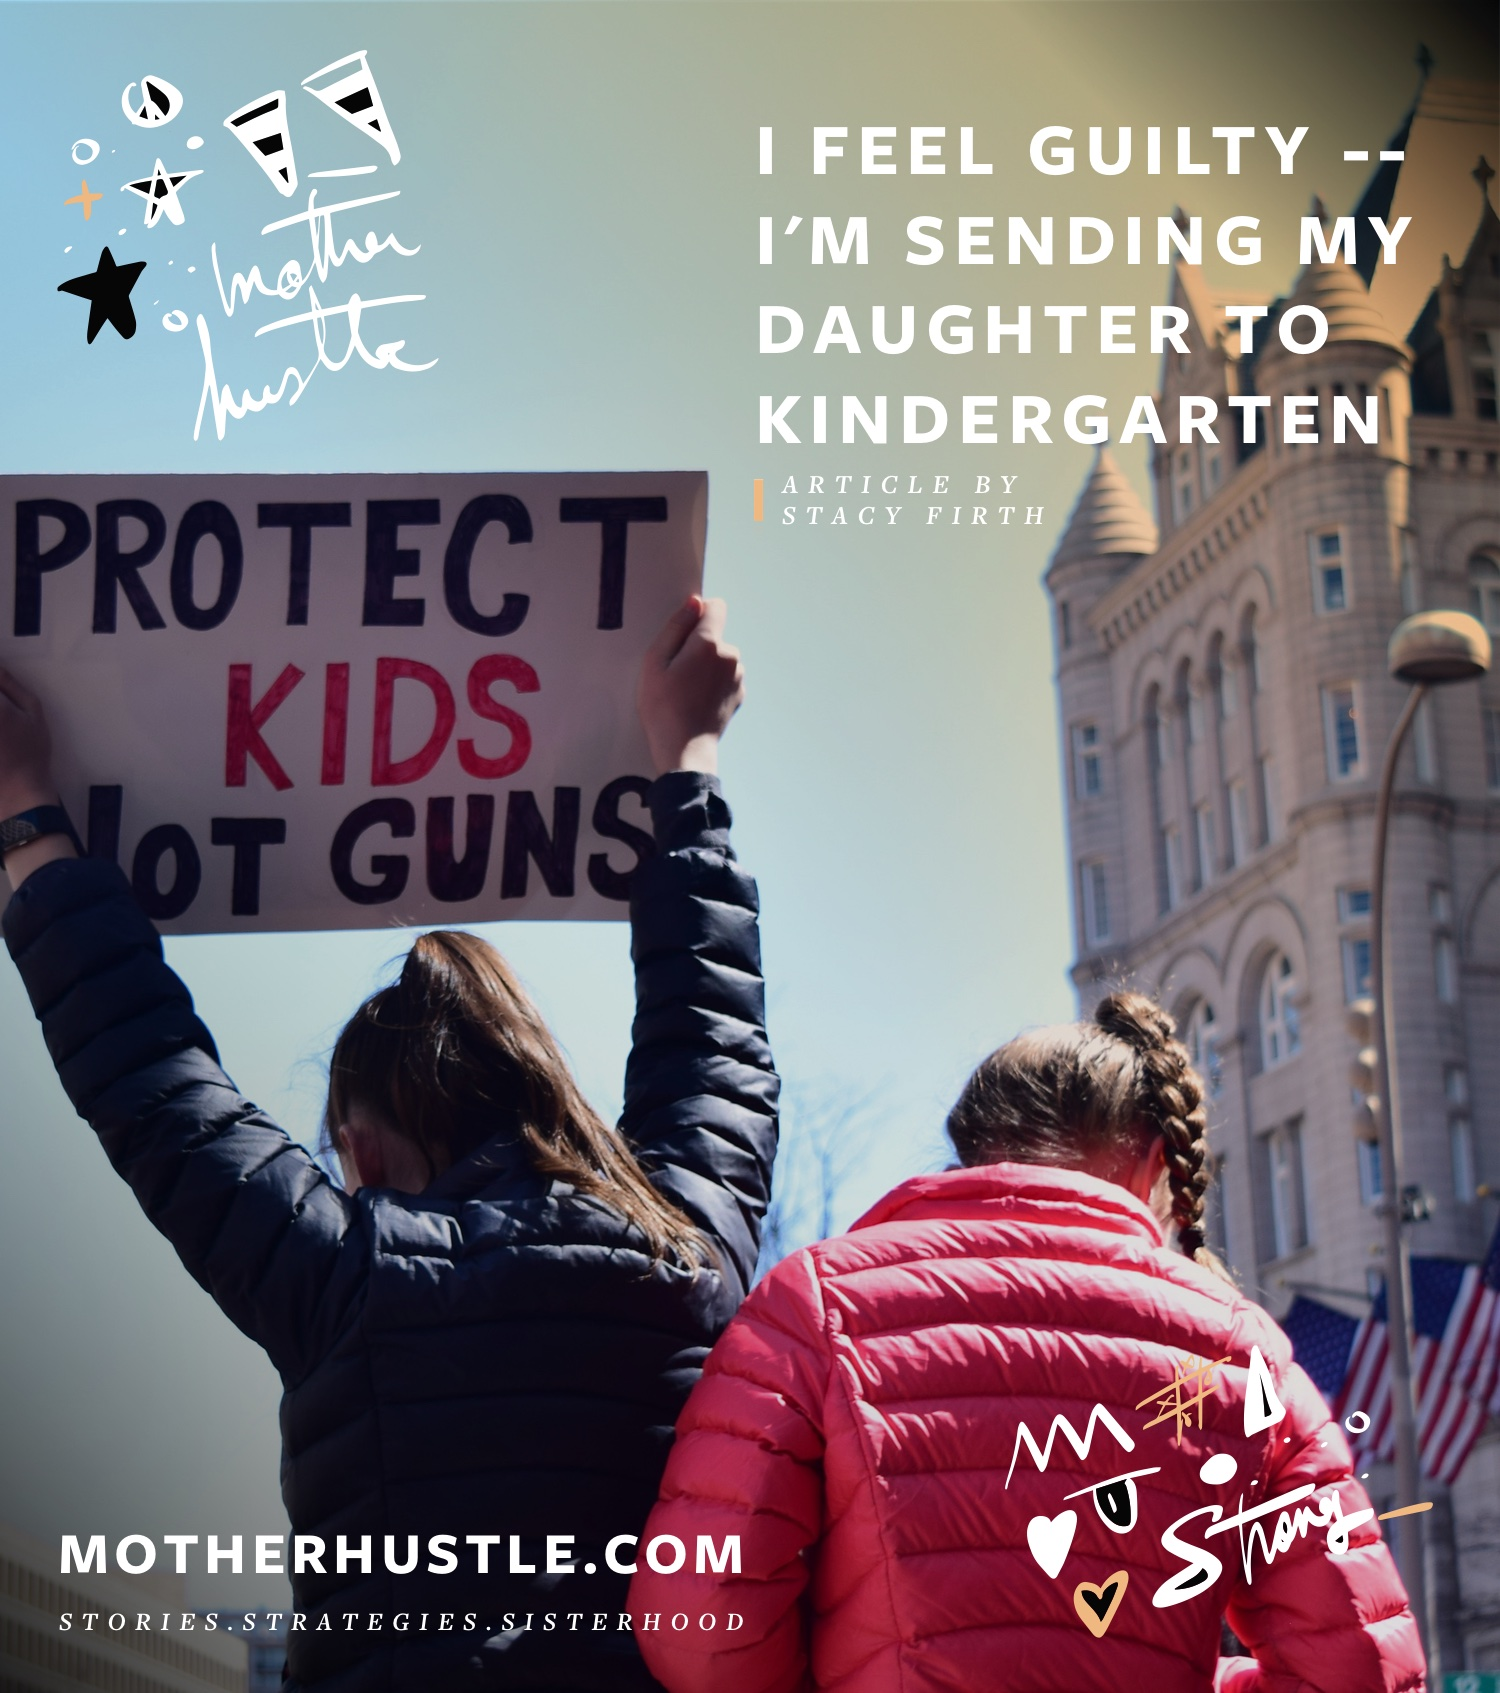 I Feel Guilty-- I'm Thinking of Sending My Daughter to Kindergarten by Stacy Firth for MotherHustle